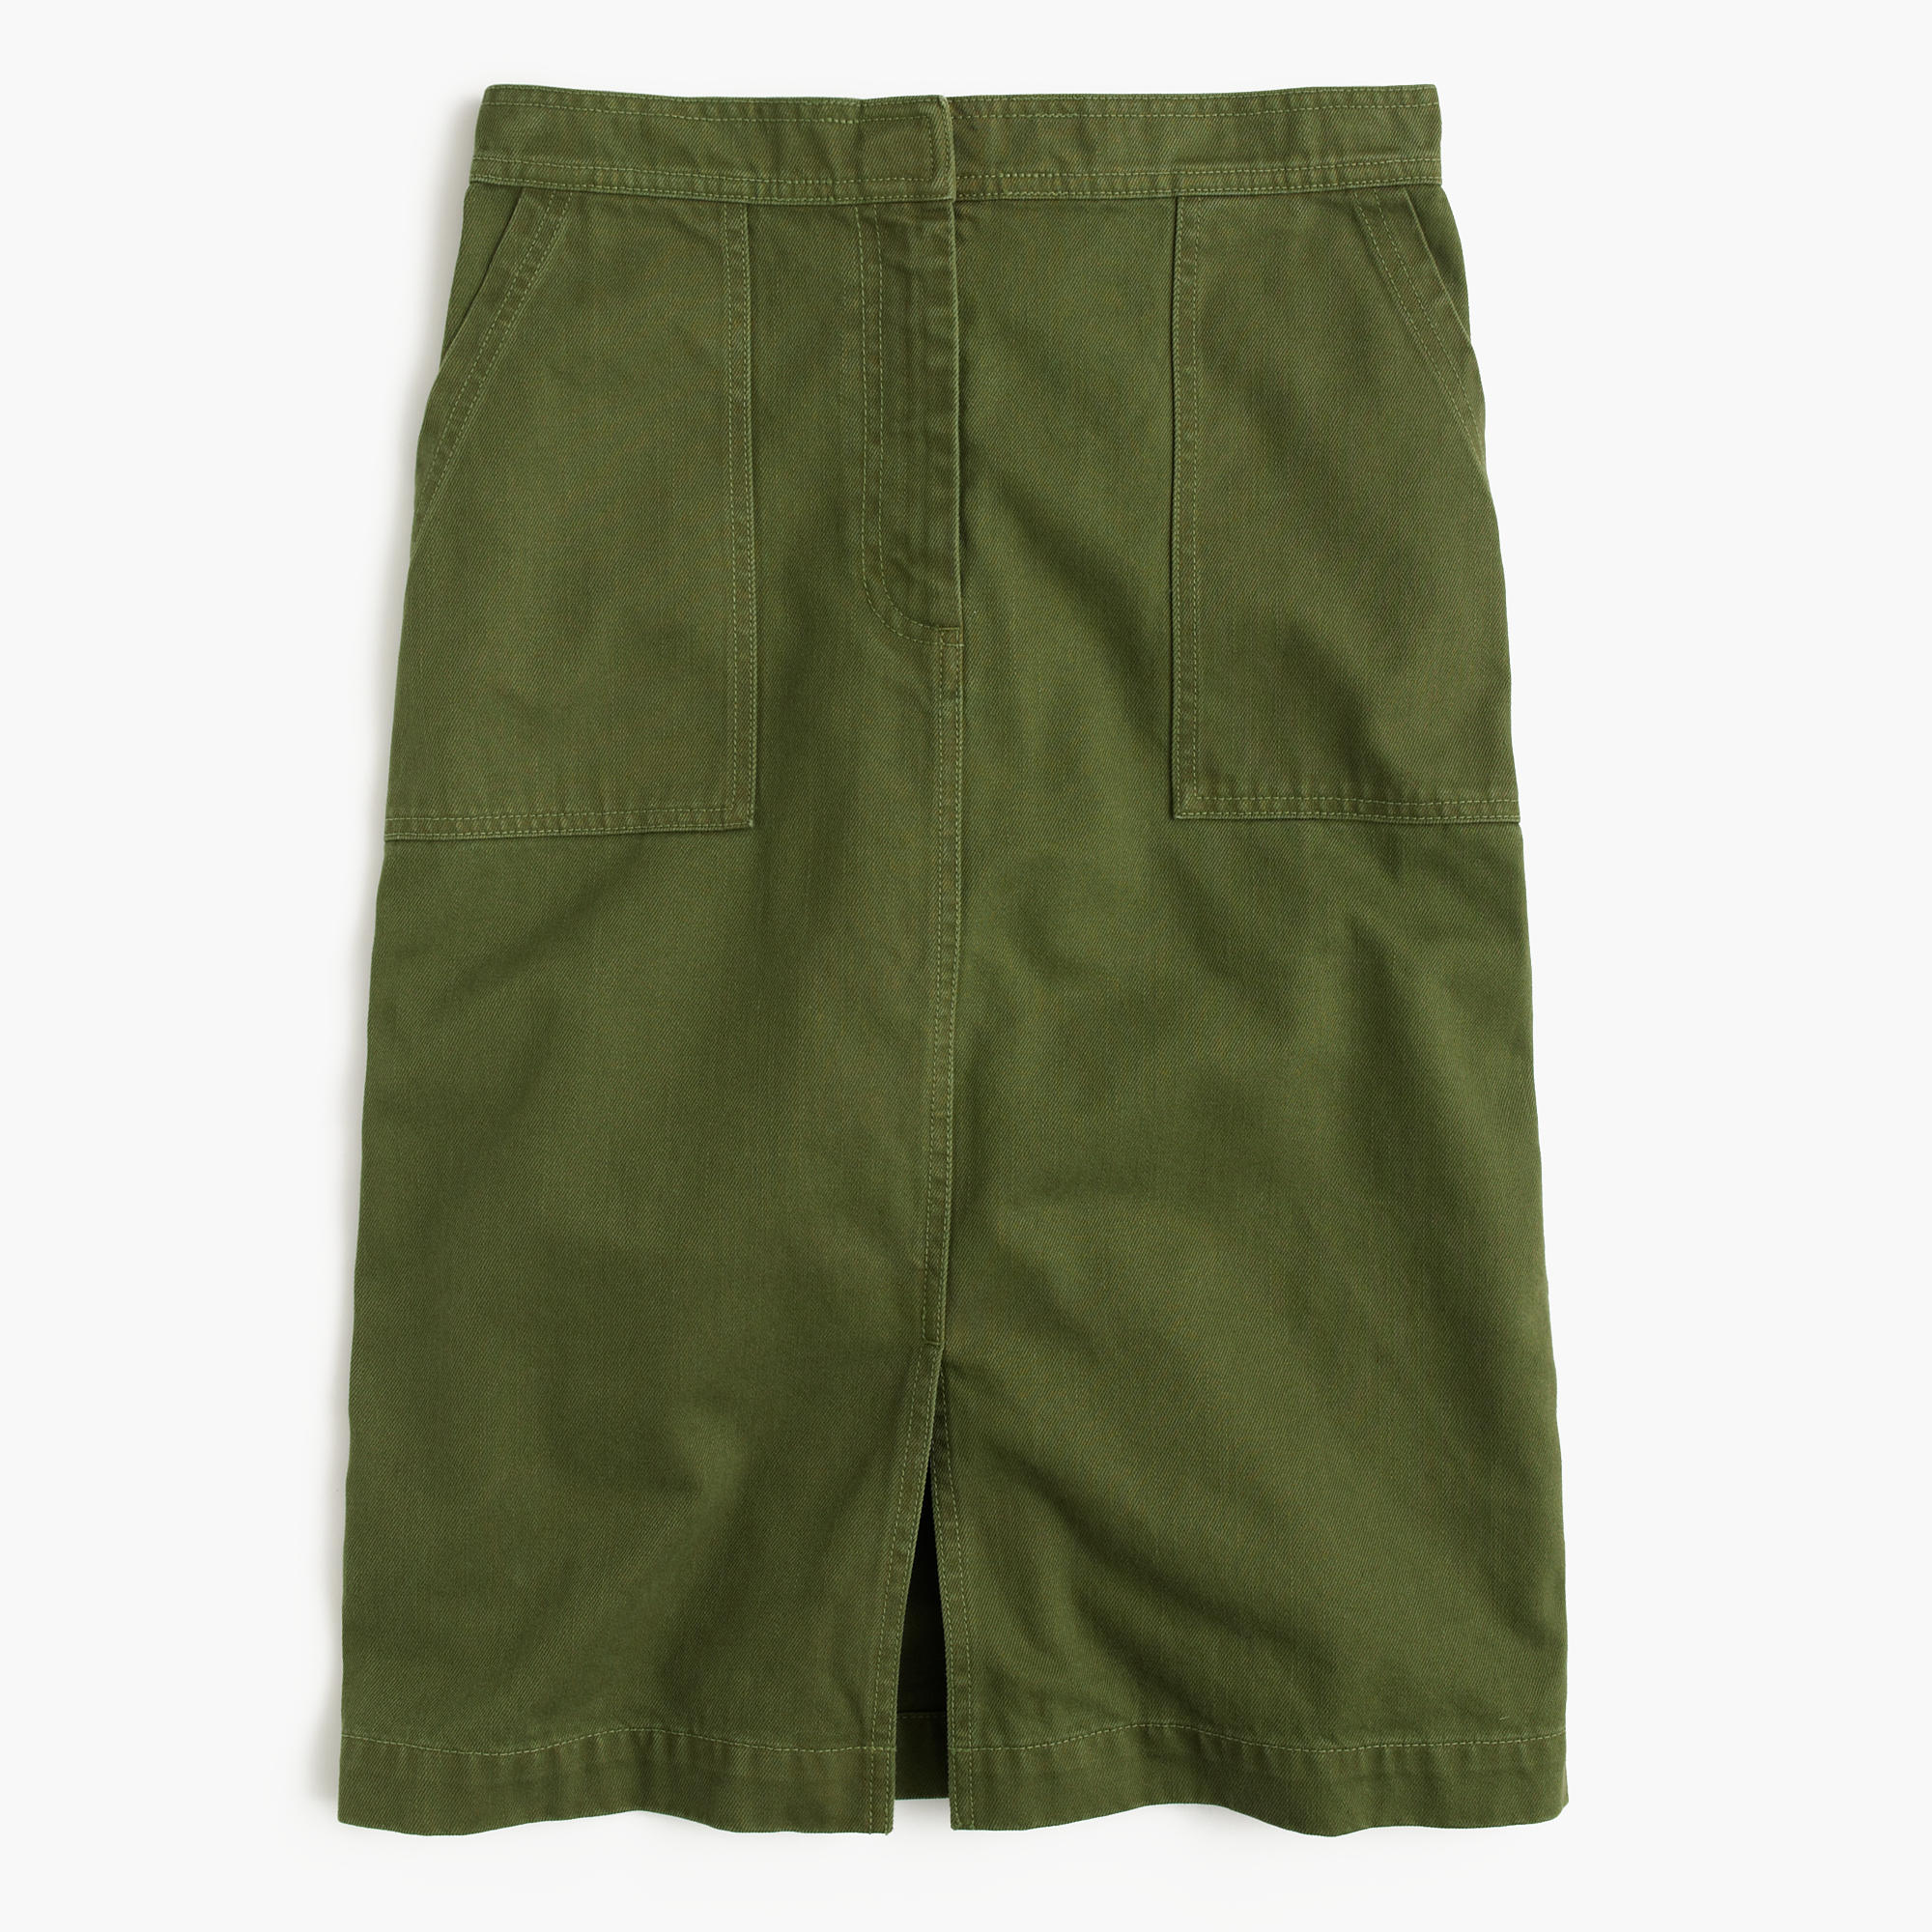 a line skirt with pockets j crew